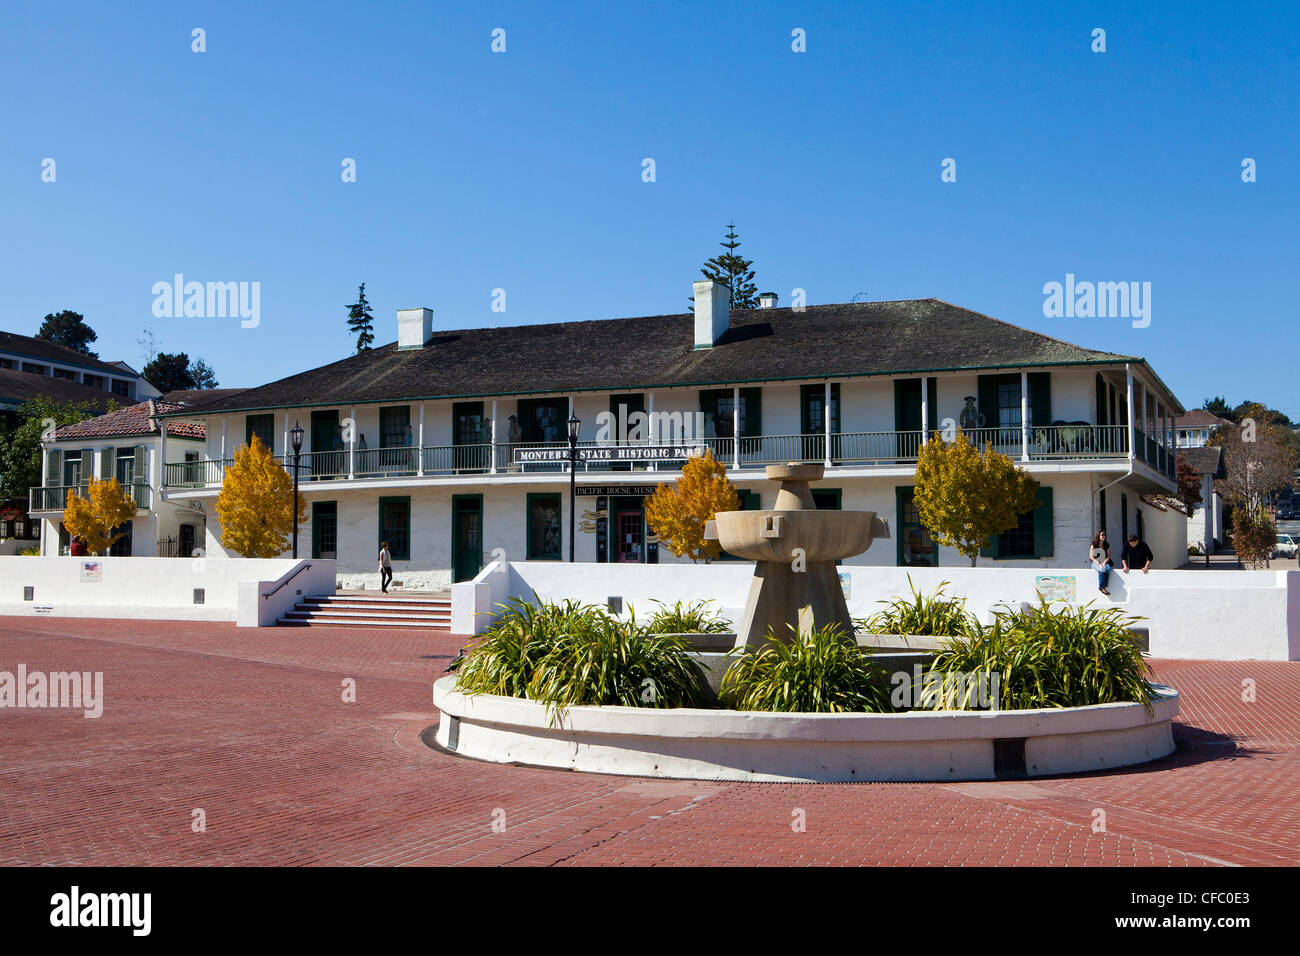 USA, United States, America, California, Monterey, City, Monterey, State, Historic Park, Pacific House Museum, administration, - Stock Image